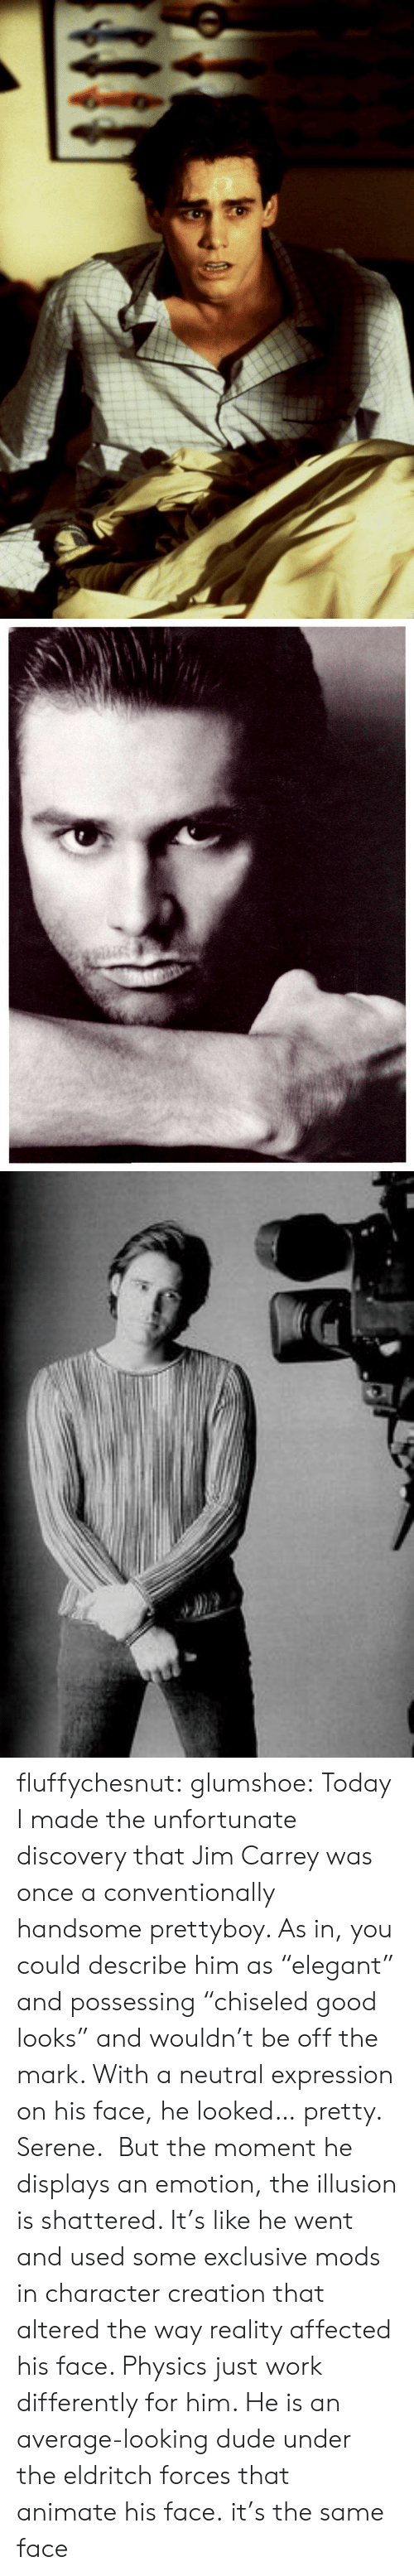 "Good Looks: fluffychesnut:  glumshoe:  Today I made the unfortunate discovery that Jim Carrey was once a conventionally handsome prettyboy. As in, you could describe him as ""elegant"" and possessing ""chiseled good looks"" and wouldn't be off the mark. With a neutral expression on his face, he looked… pretty. Serene.  But the moment he displays an emotion, the illusion is shattered. It's like he went and used some exclusive mods in character creation that altered the way reality affected his face. Physics just work differently for him. He is an average-looking dude under the eldritch forces that animate his face.  it's the same face"